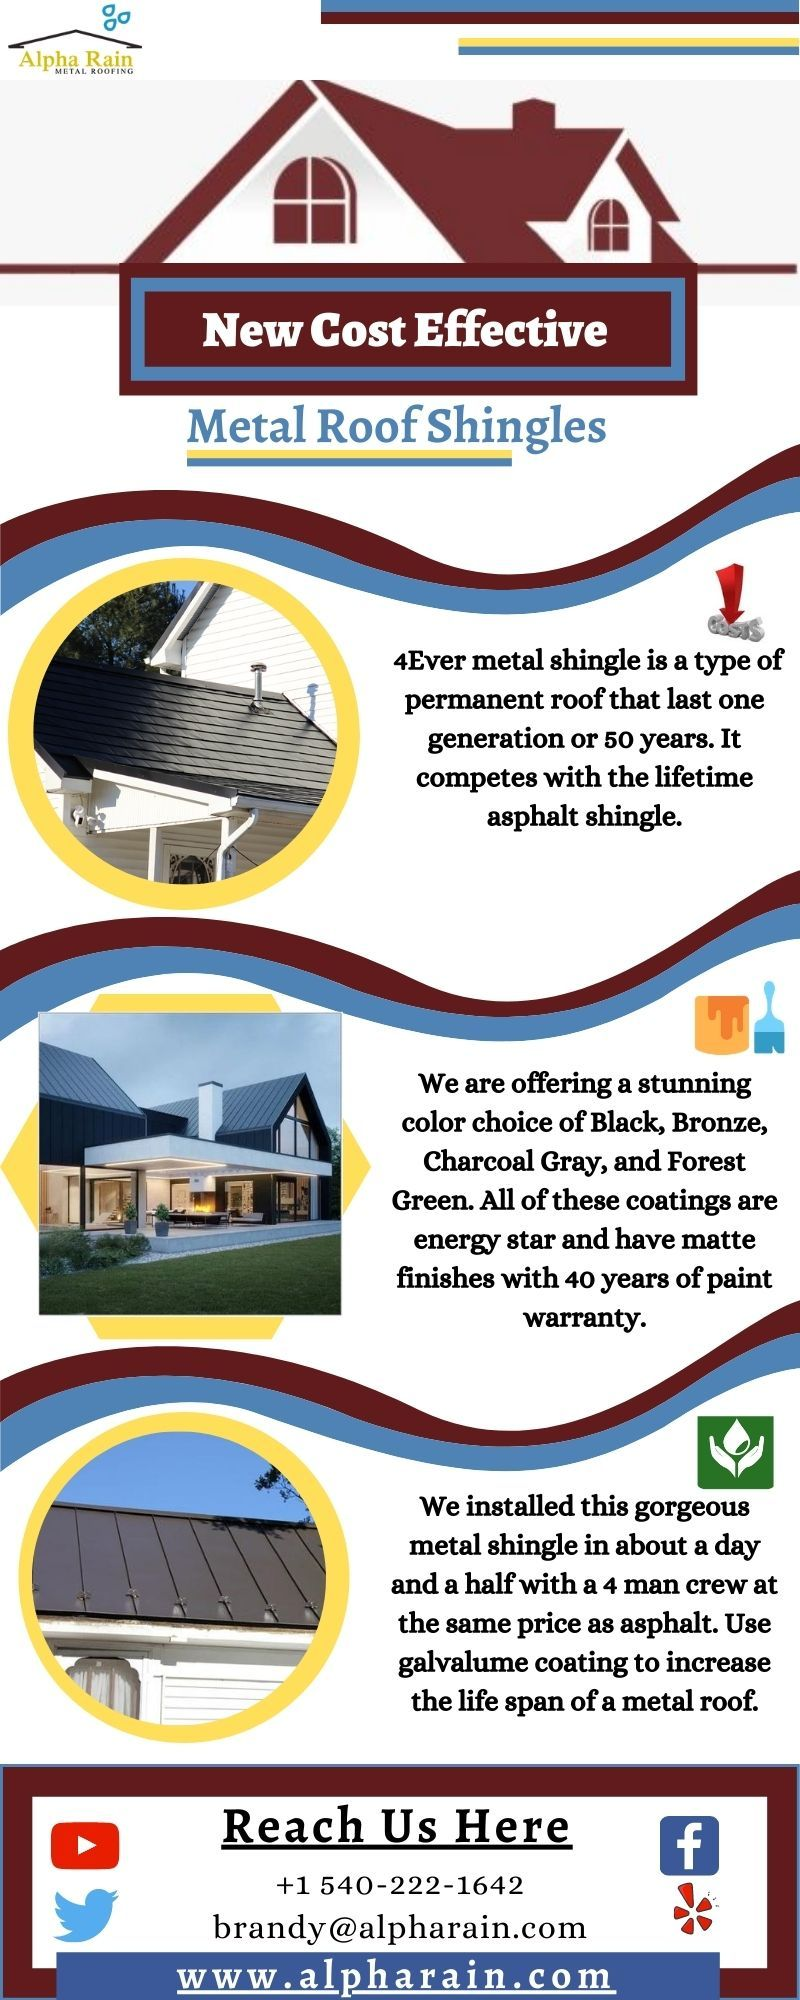 Installing Metal Shingles With A Galvalume Coating In 2020 Shingling Metal Shingle Roof Beautiful Roofs